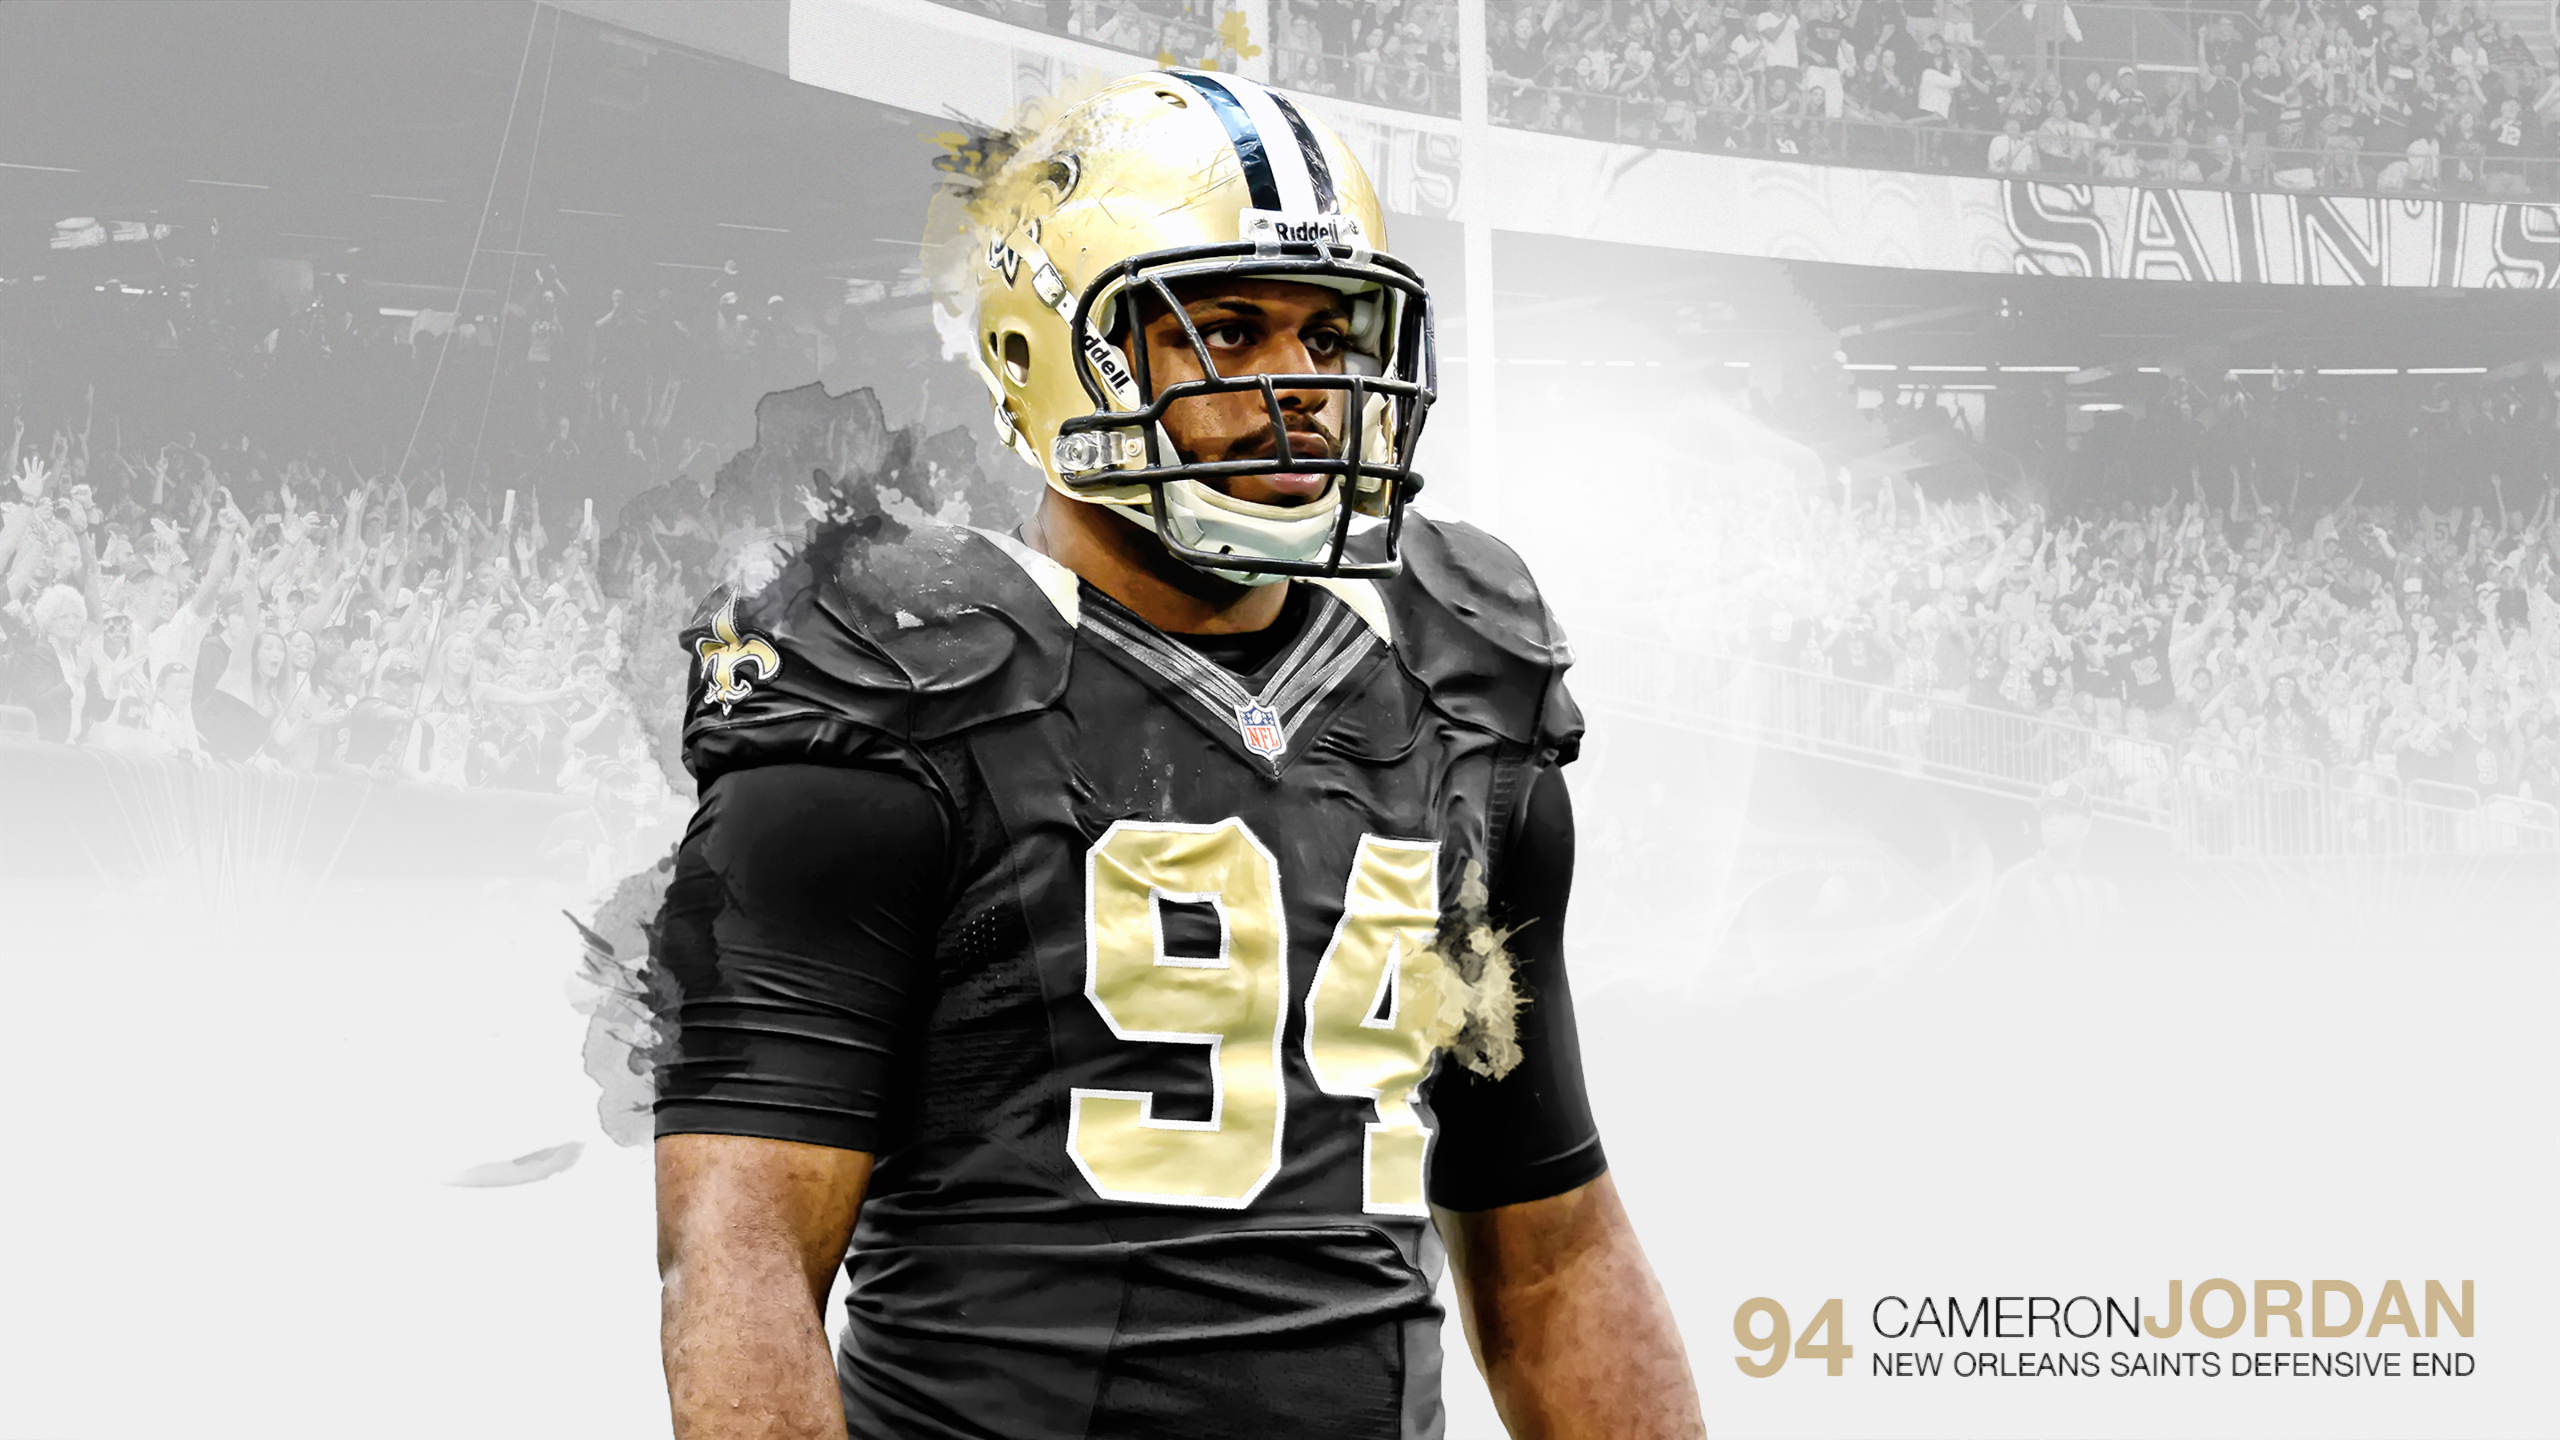 cameron jordan wallpapers hd collection for download 2560x1440